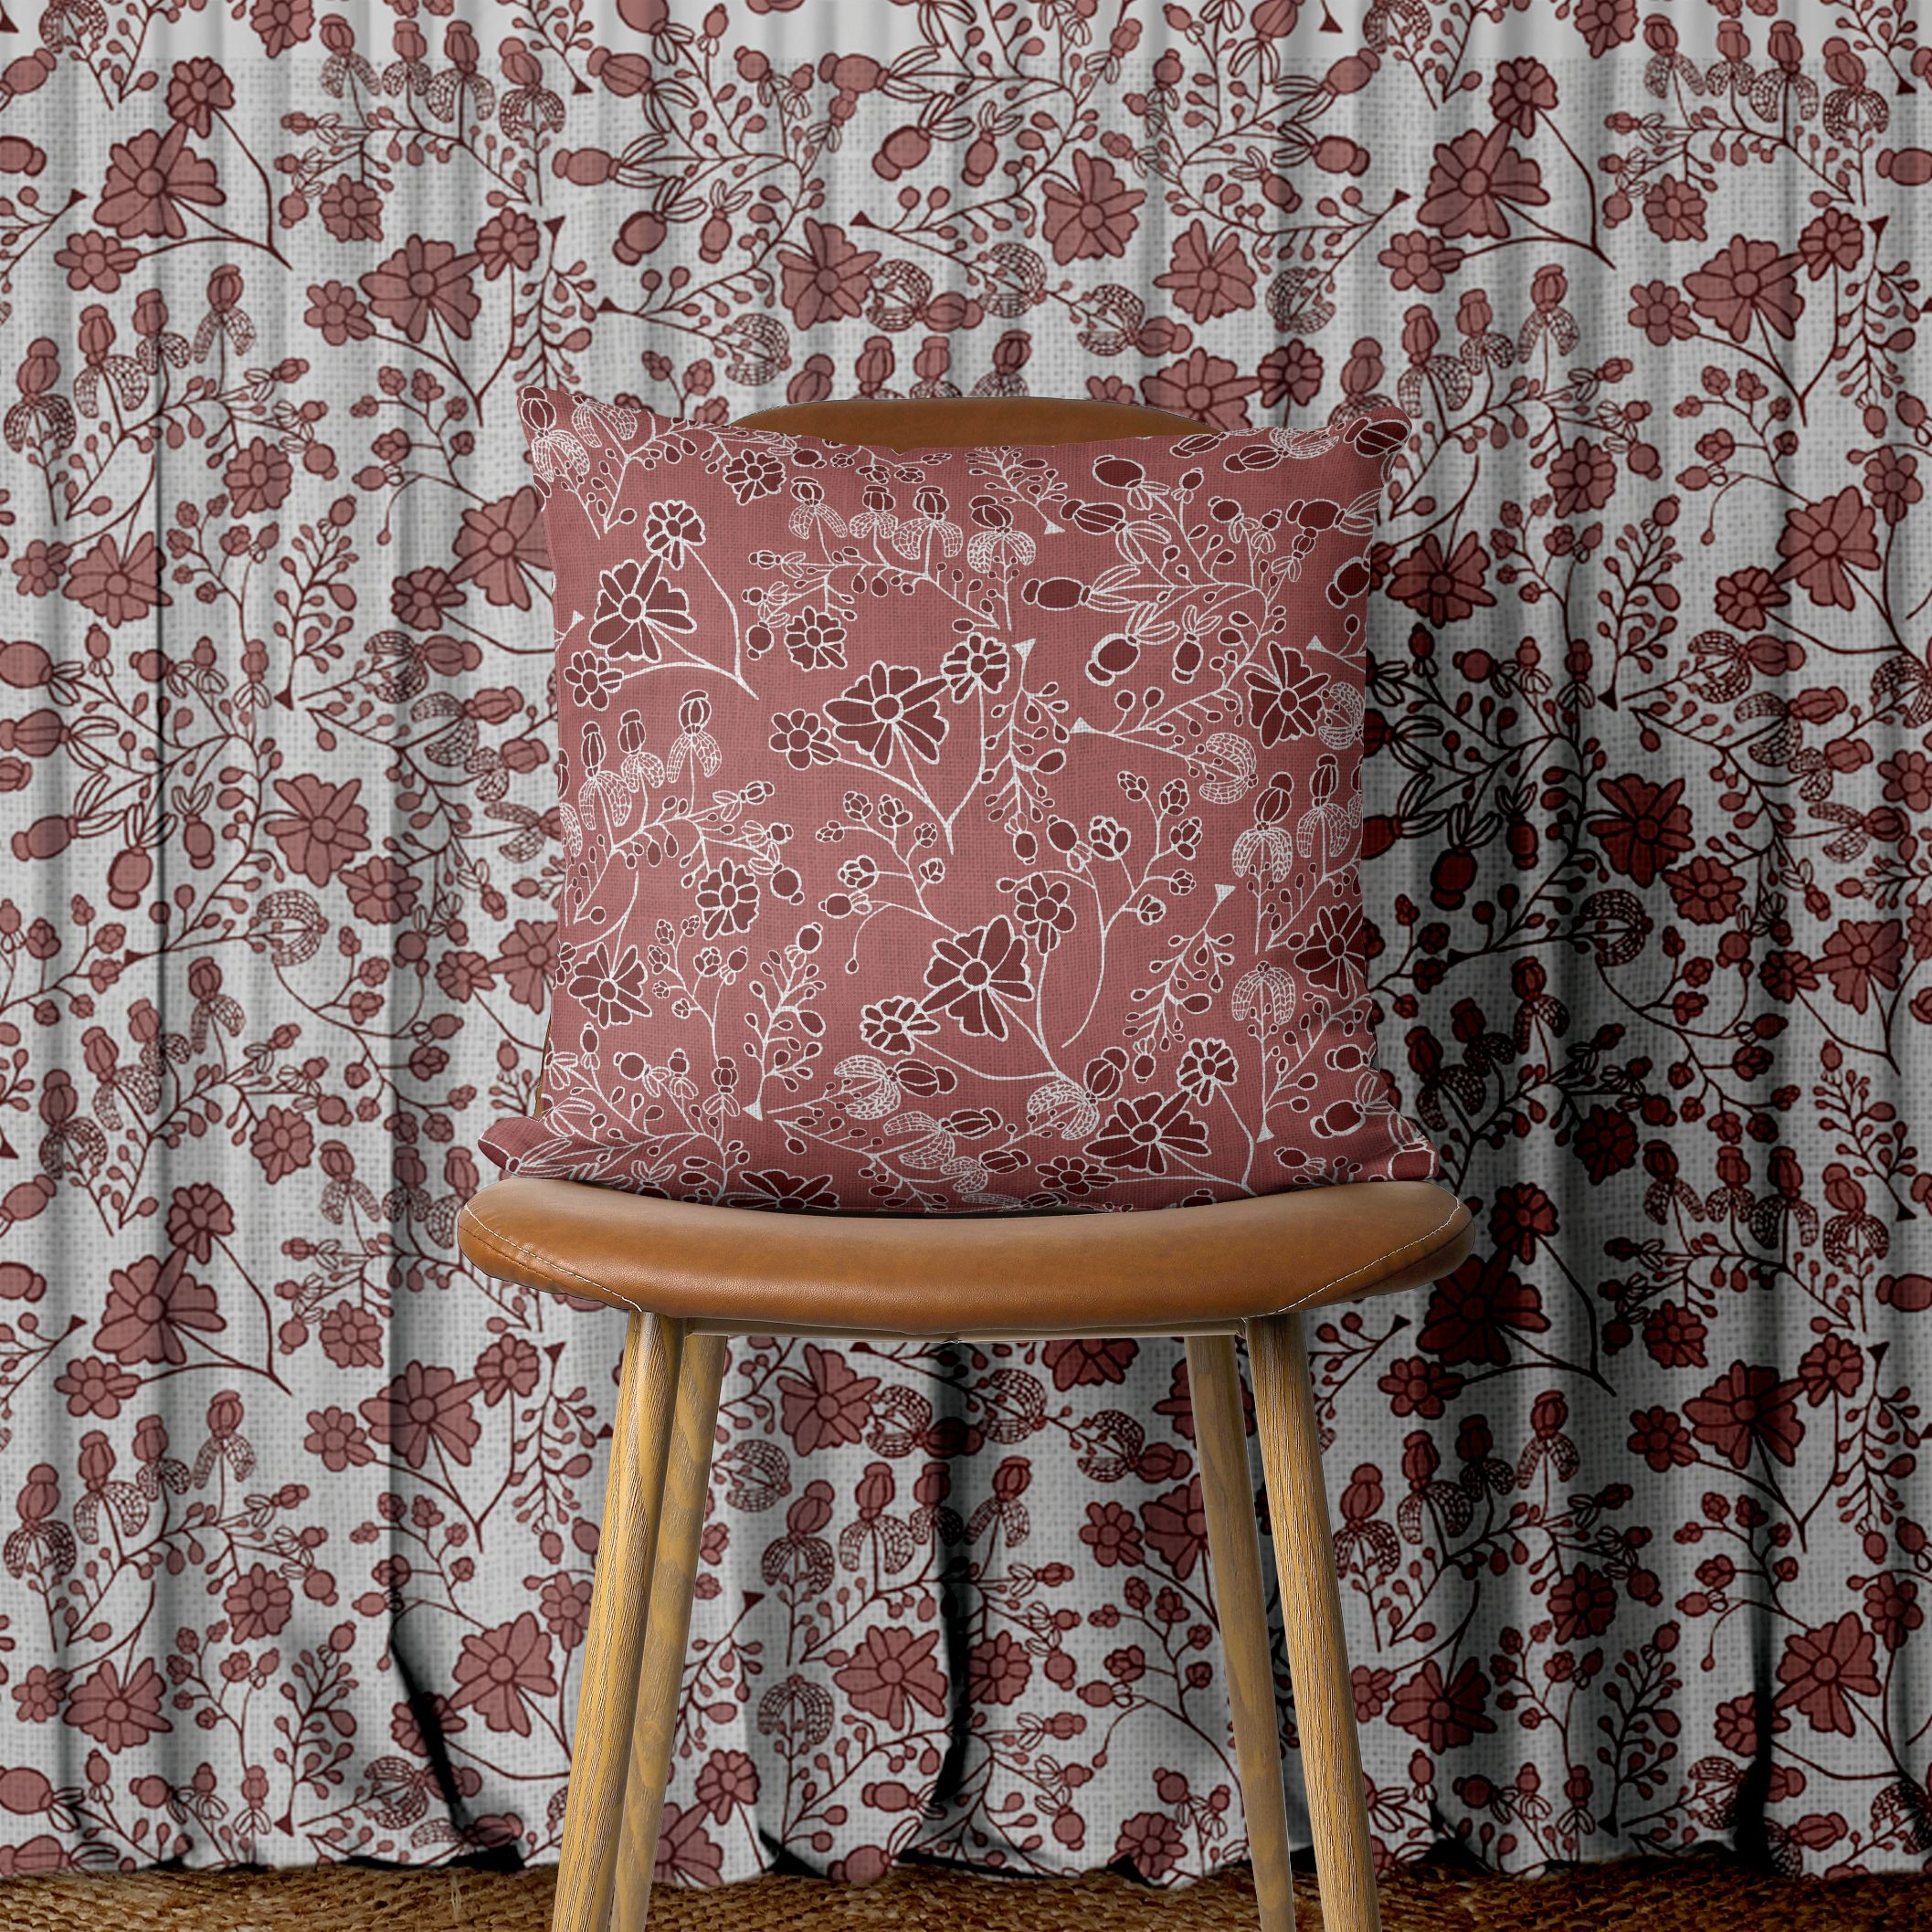 jimmy-pike-desert-rose-textiles-wall-covering